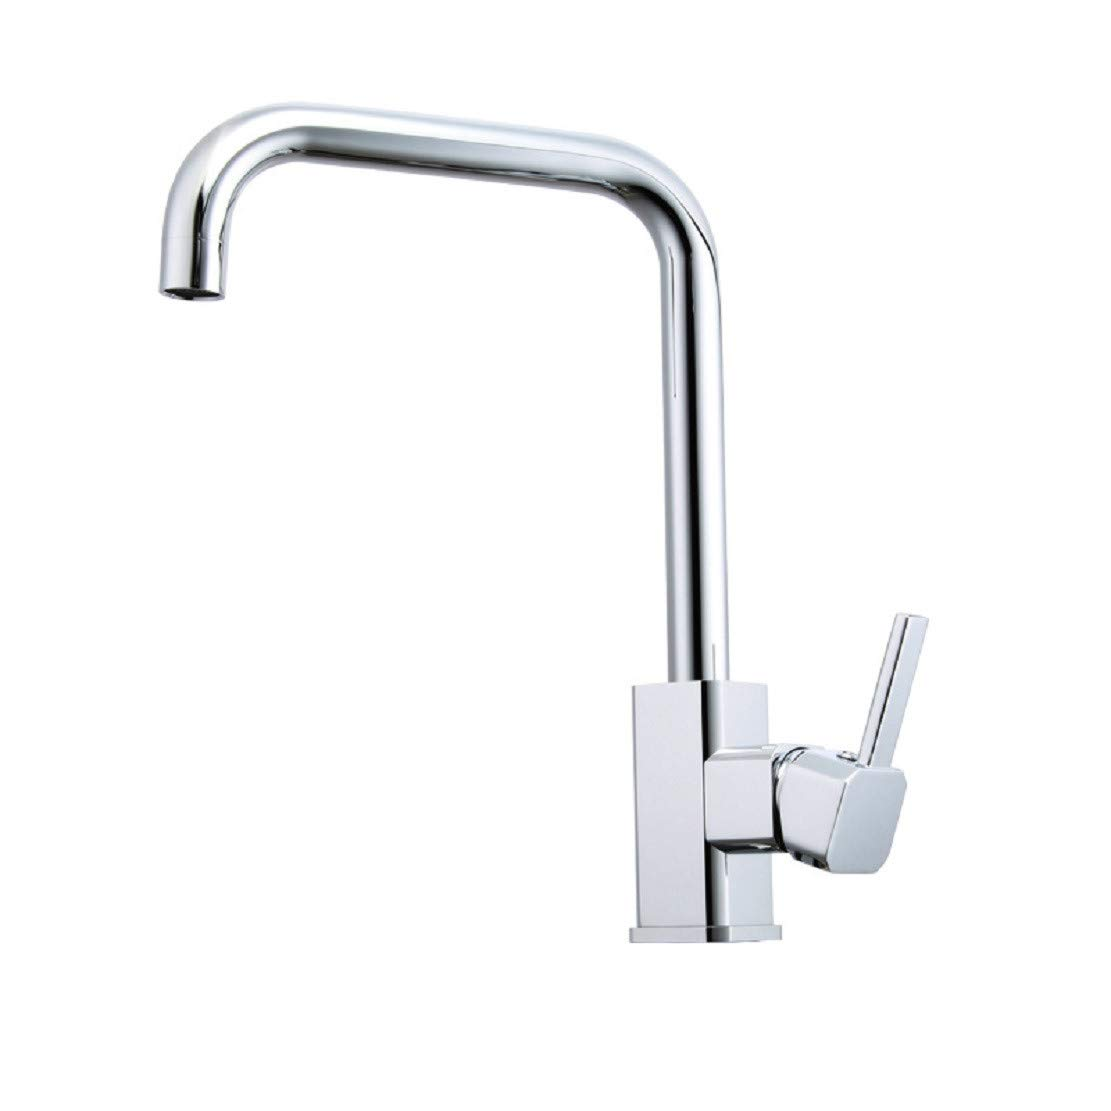 Kitchen Faucet Cool And Hot Mixed Water Dishwash Pool And Vegetable Pot In Faucet Kitchen Kitchen Sink Faucets Basin Mixer Faucet